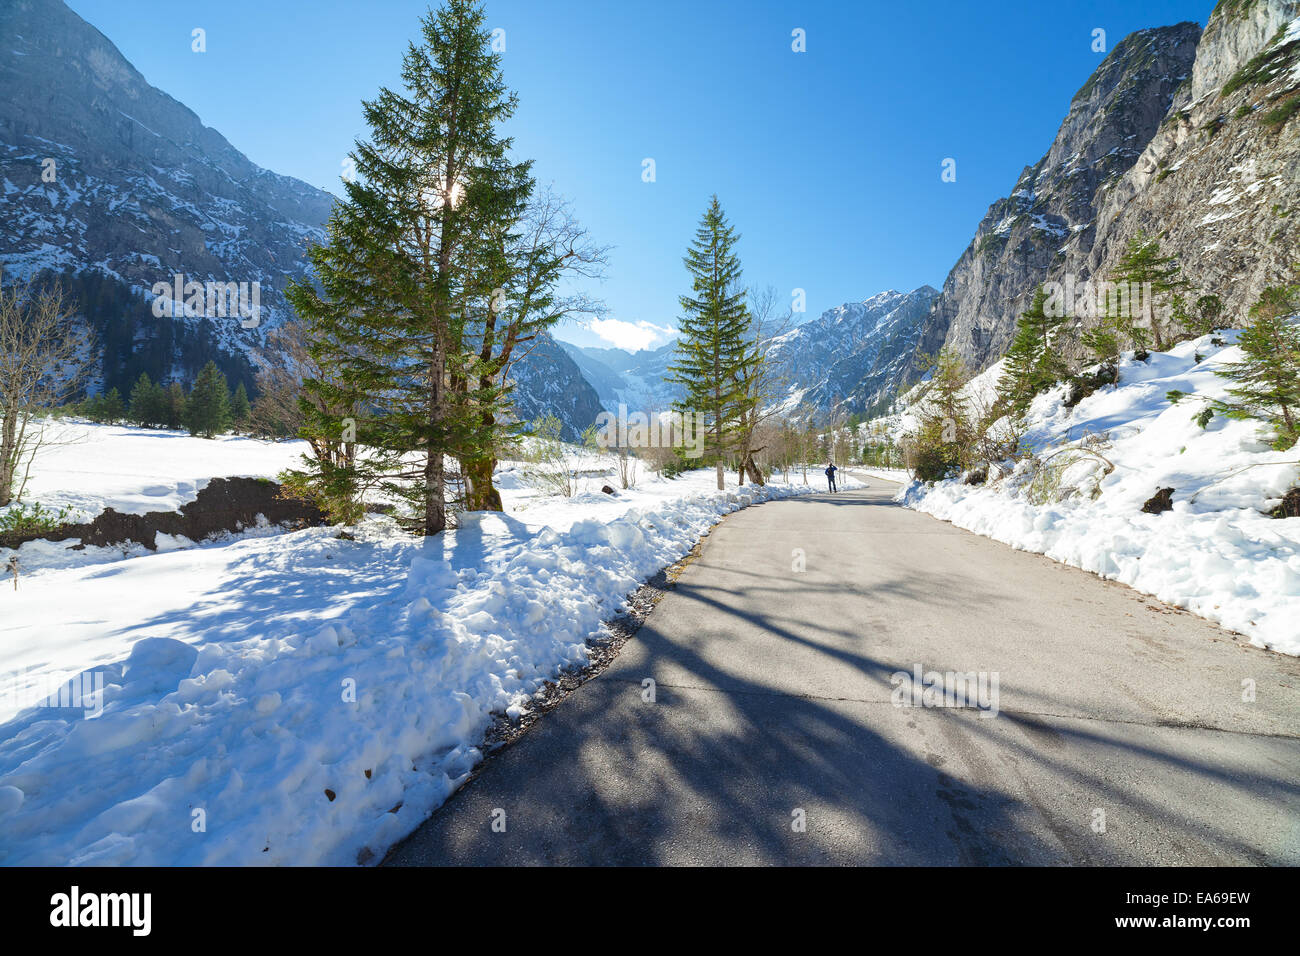 Snow fall early winter and late autumn. Winter road in the forest. - Stock Image